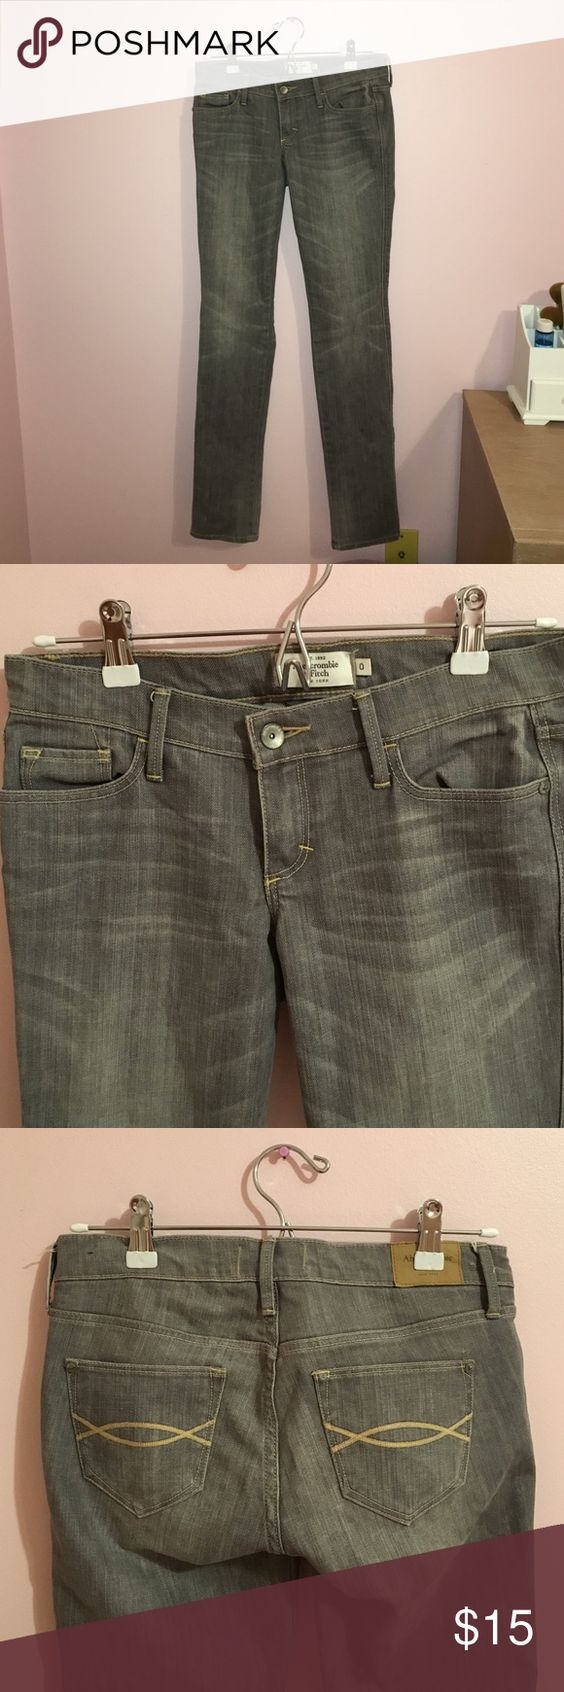 Gray Skinny Jeans Abercrombie and Fitch Gray Skinny Jeans. Gently used. Abercrombie & Fitch Jeans Skinny